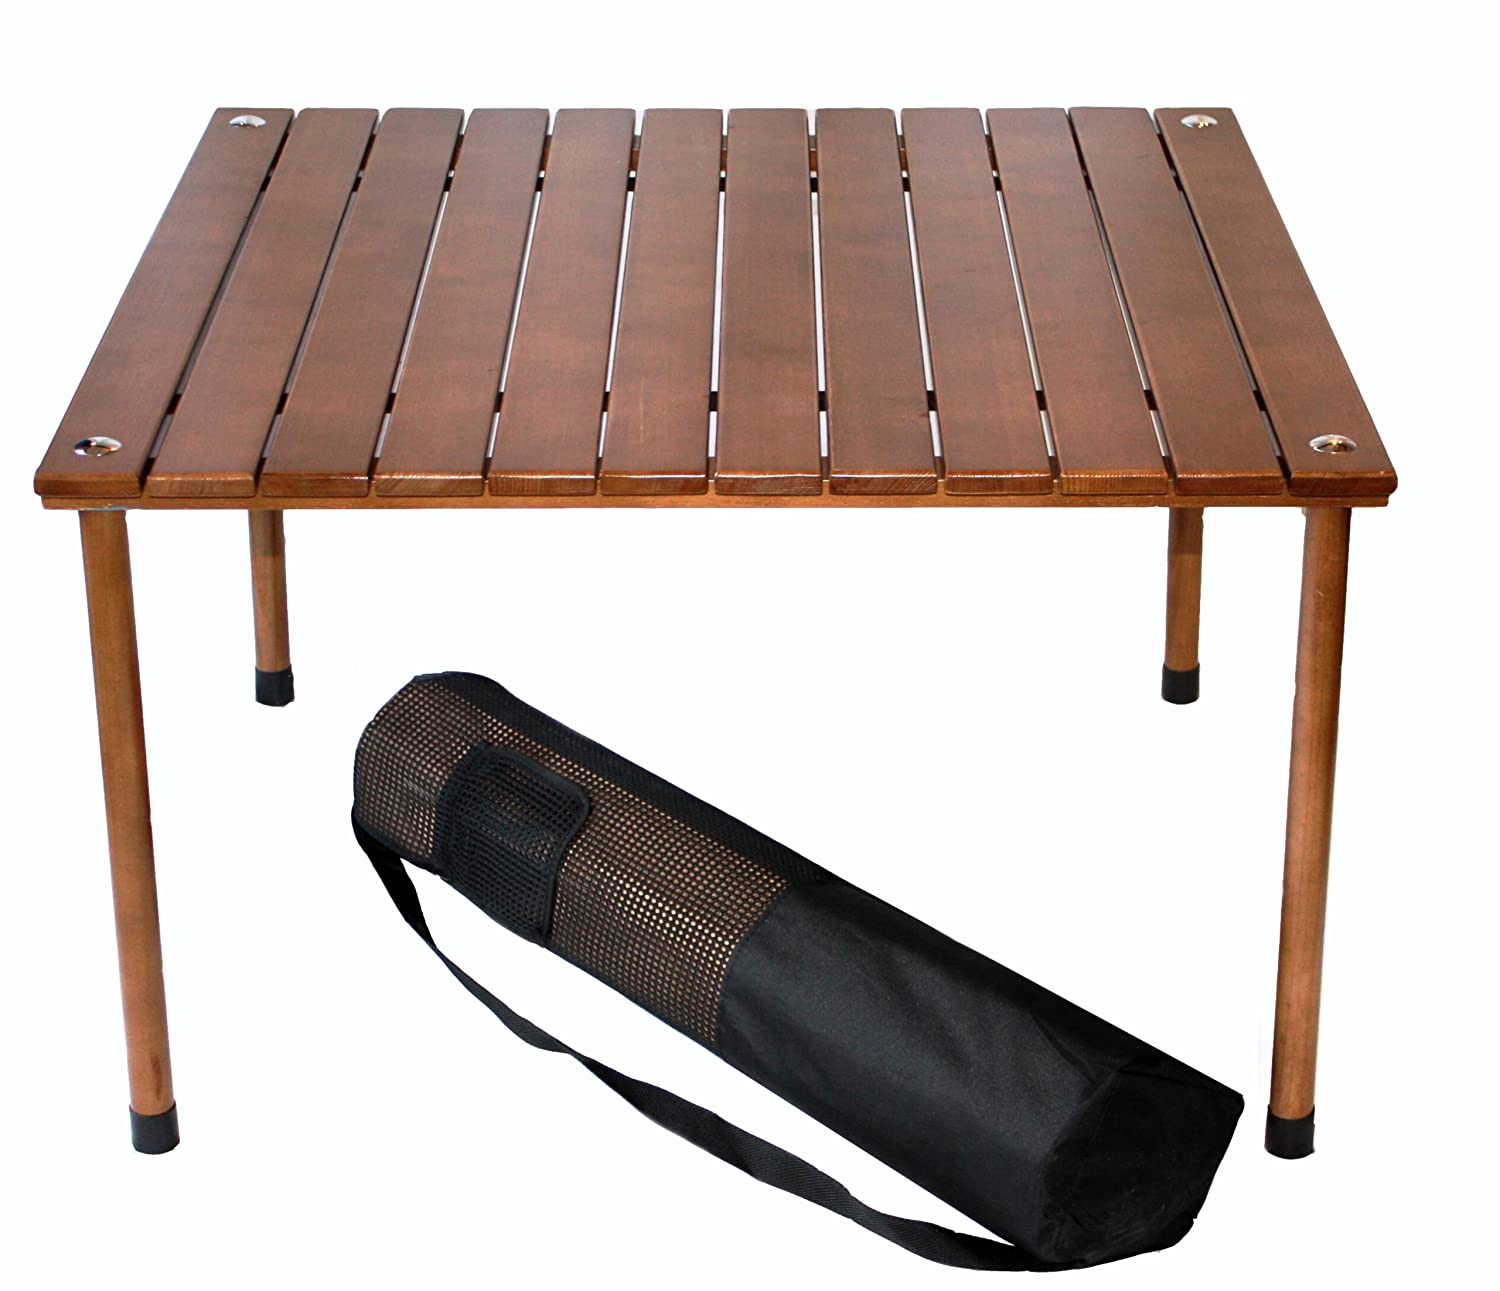 Portable Folding Camping Picnic Table Wood Low Desk Indoor ...